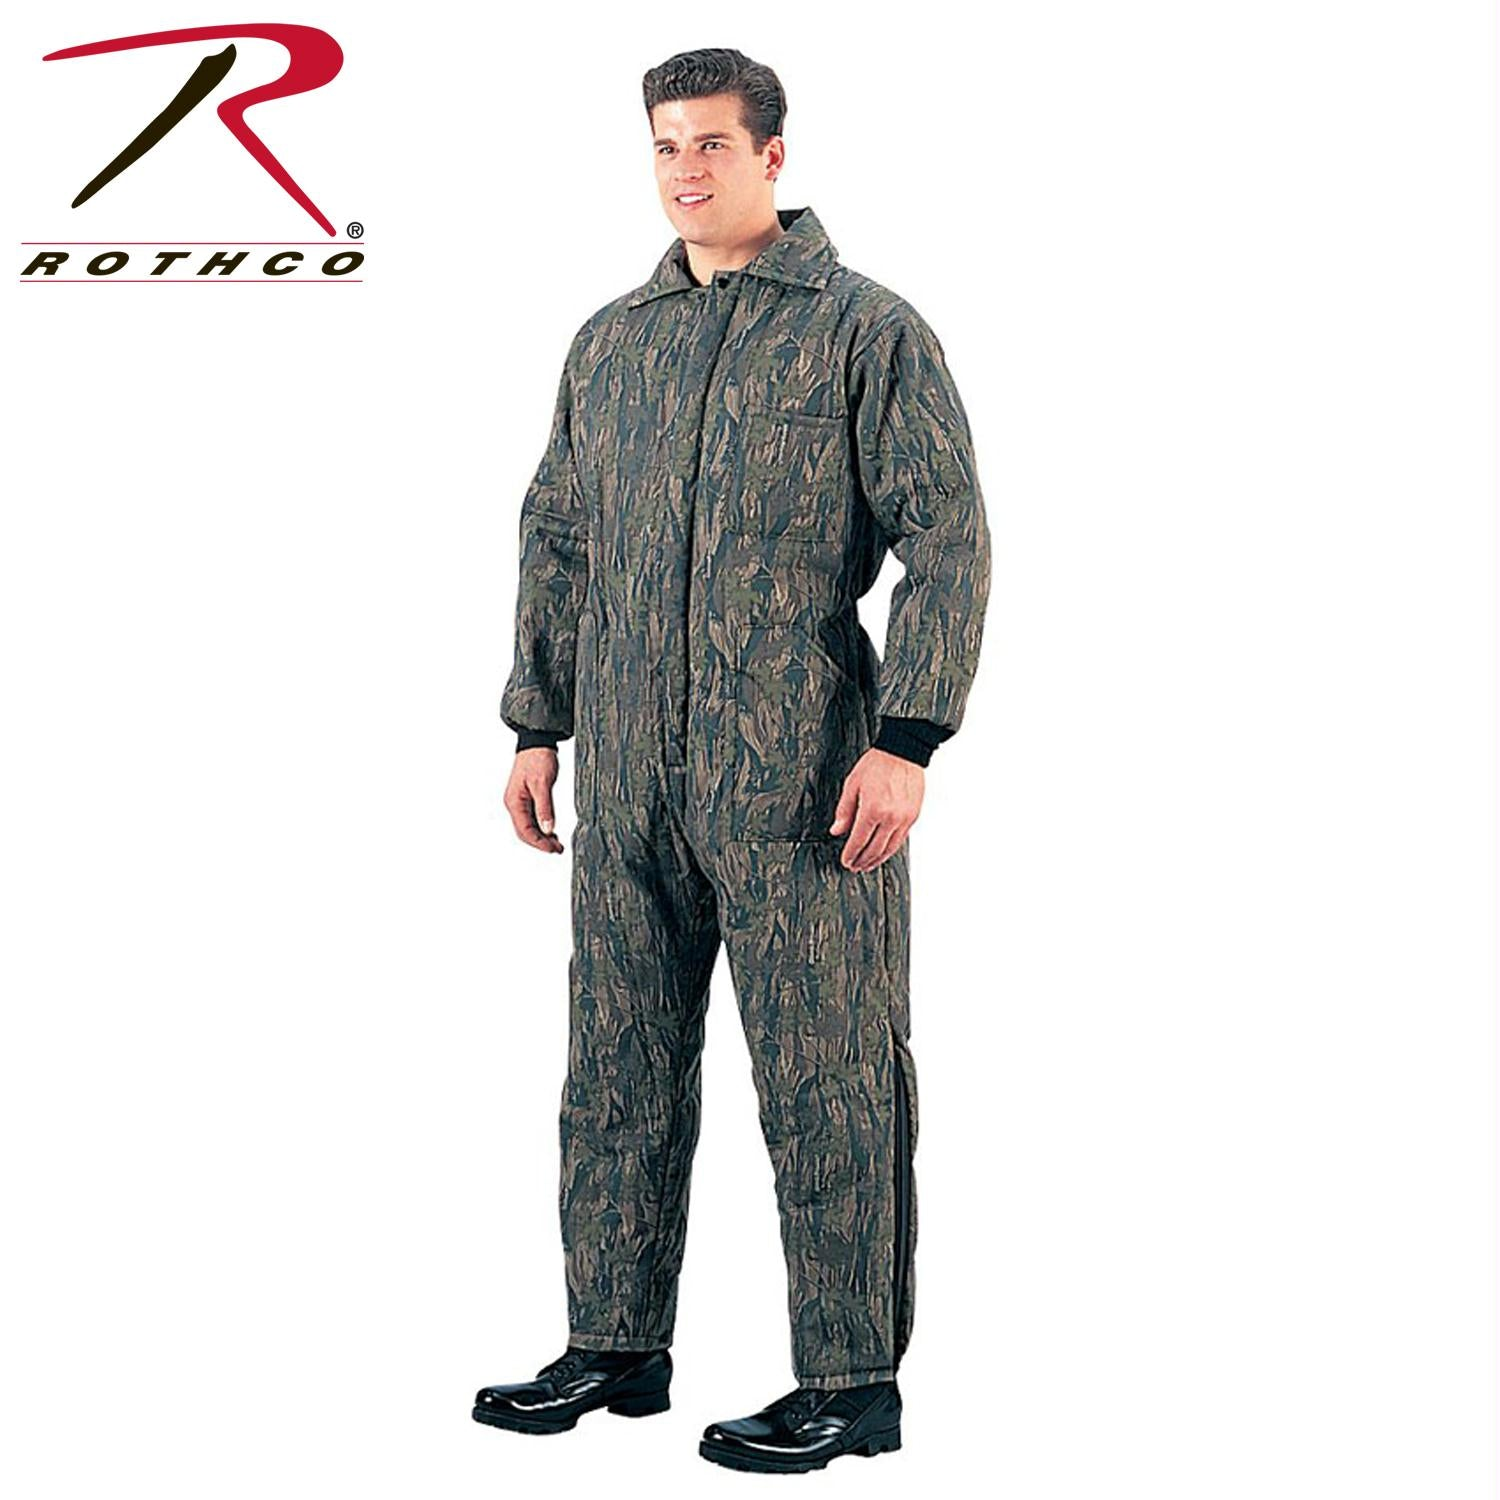 Rothco Insulated Coveralls - Smokey Branch Camo / 3XL